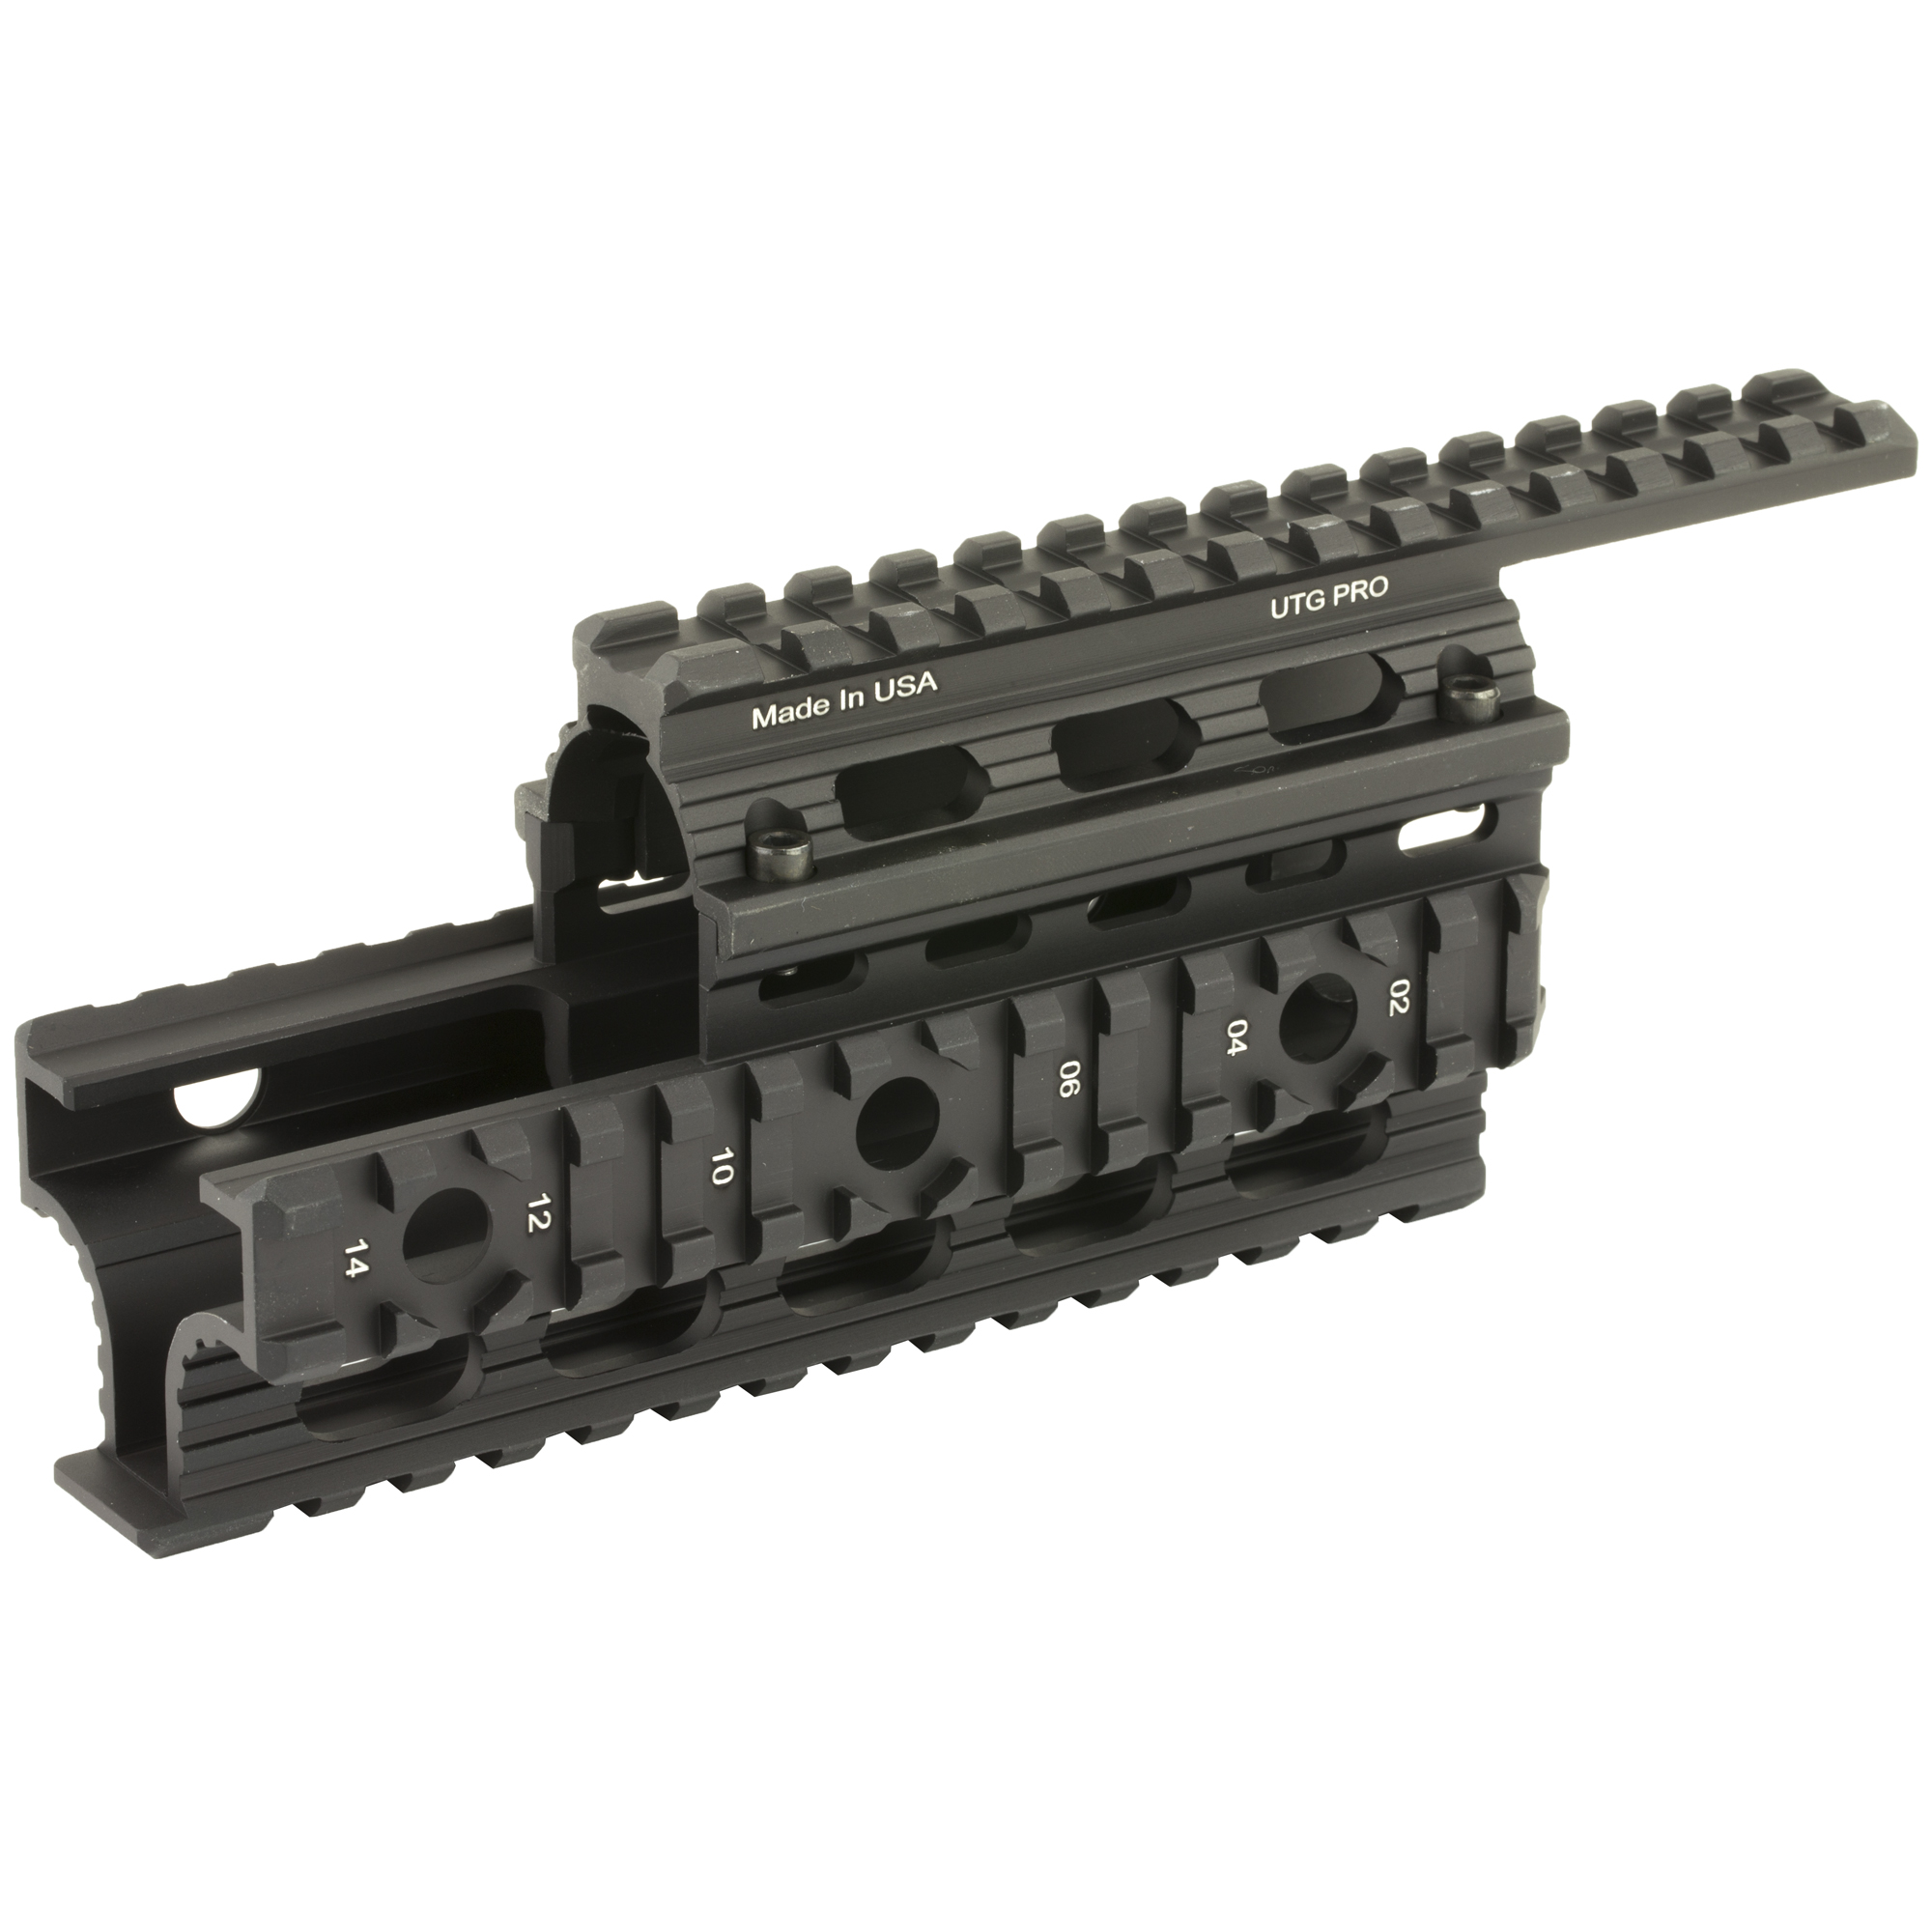 """The UTG Pro universal AK-47 quad rail handguard fits Romanian"""" Bulgarian"""" Chinese and US AK's and variants"""" including models with oversized barrel/rear sight block. There are four Mil-spec picatinny rails with integrated QD swivel housings on left/right rails for versatile accessory applications. Black rubber rail guards are included."""